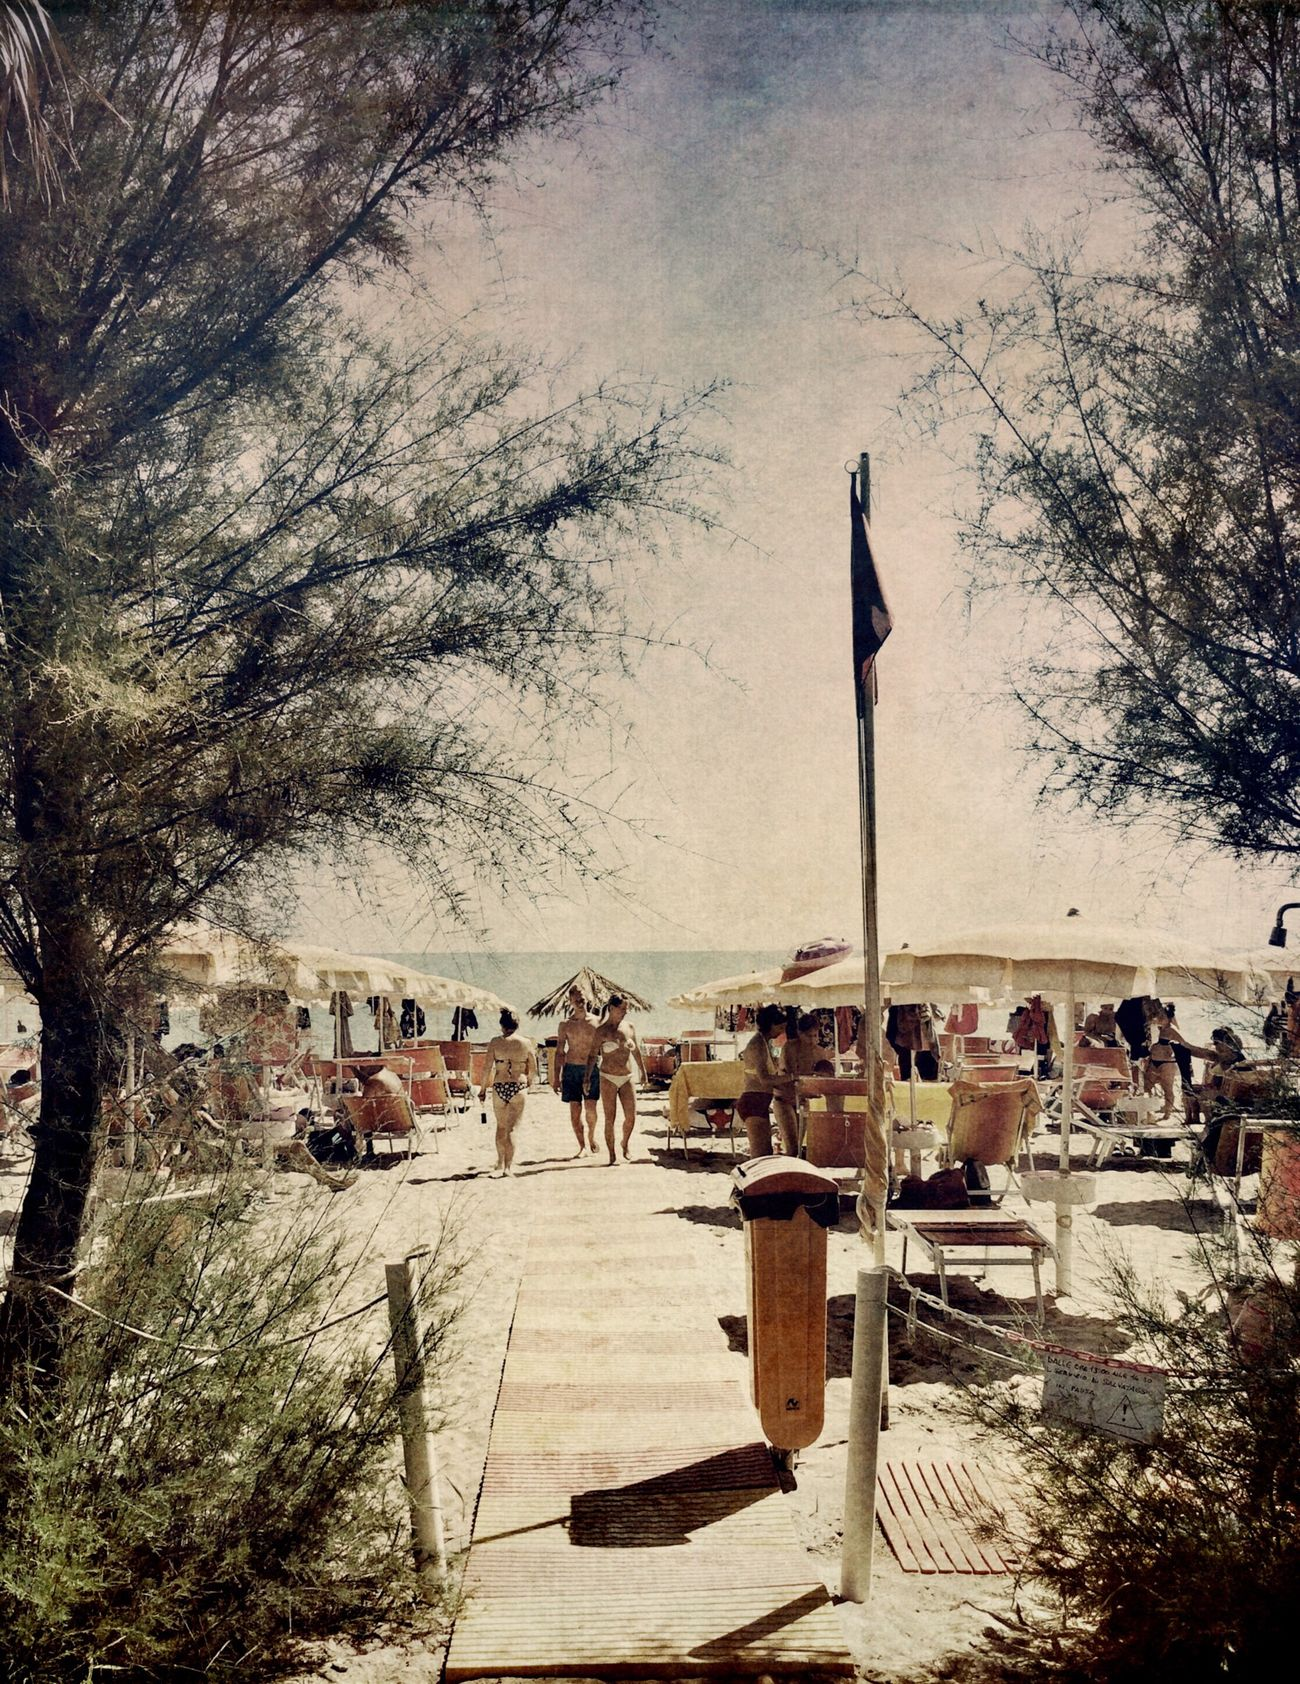 Summer dimension Onthebeach AMPt_community NEM Submissions Mob Fiction